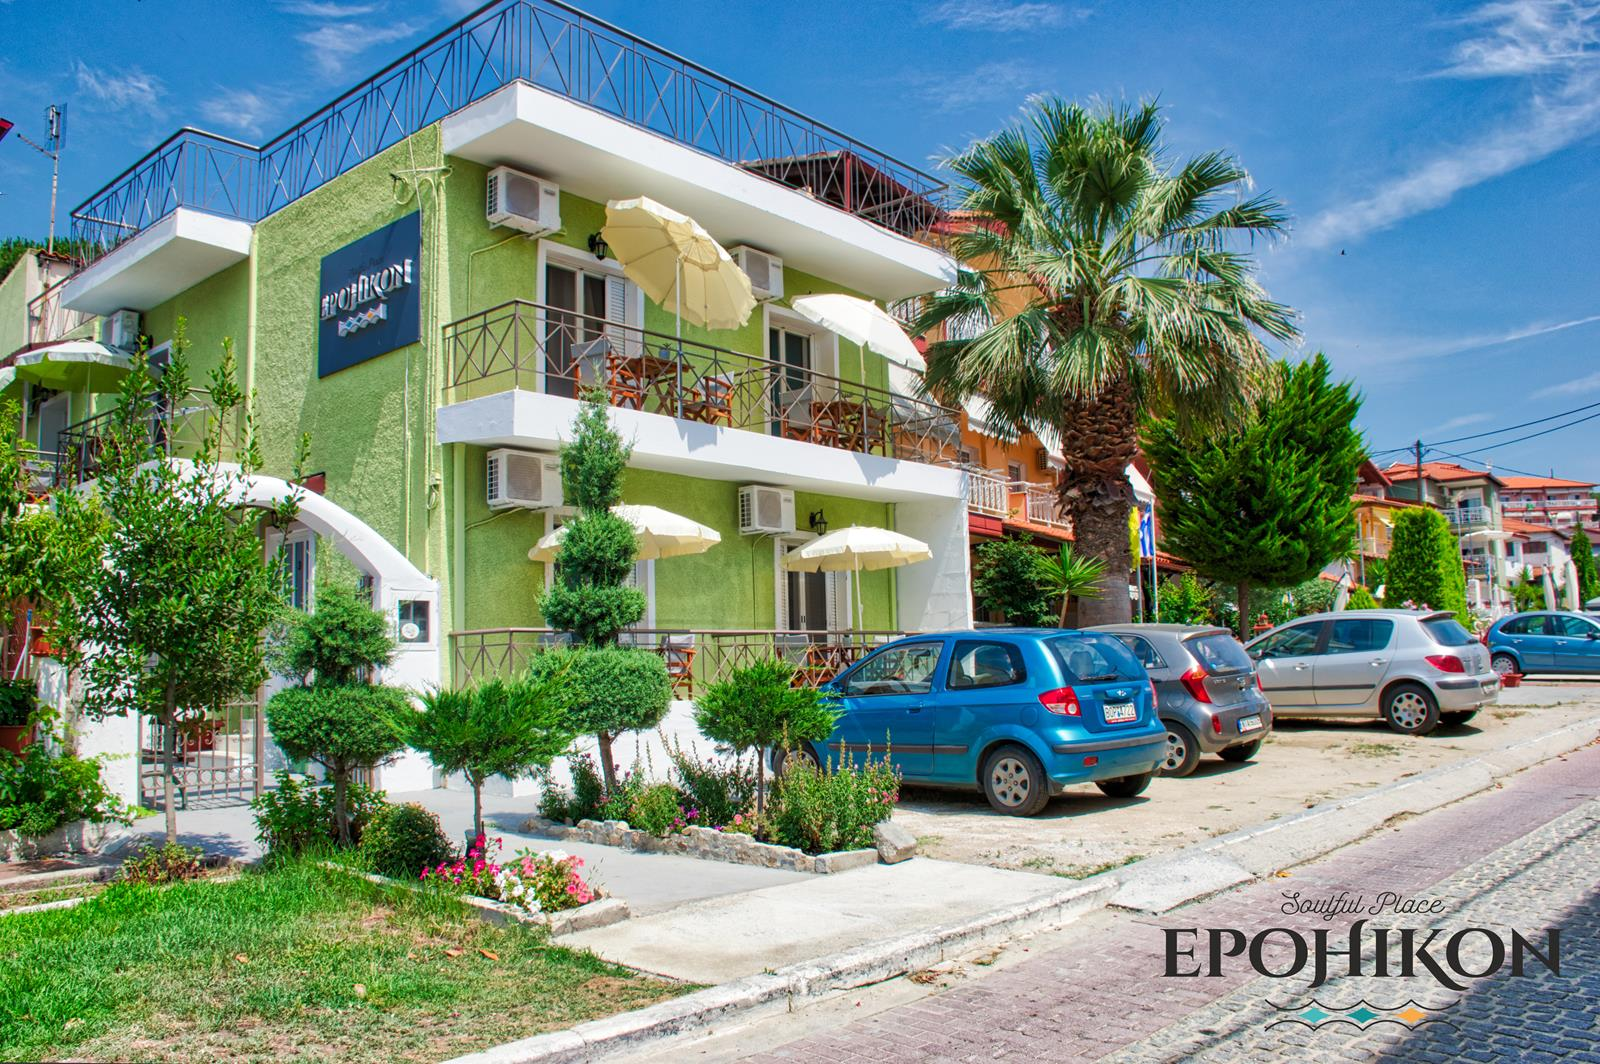 sarti greece apartments - Epohikon Studios